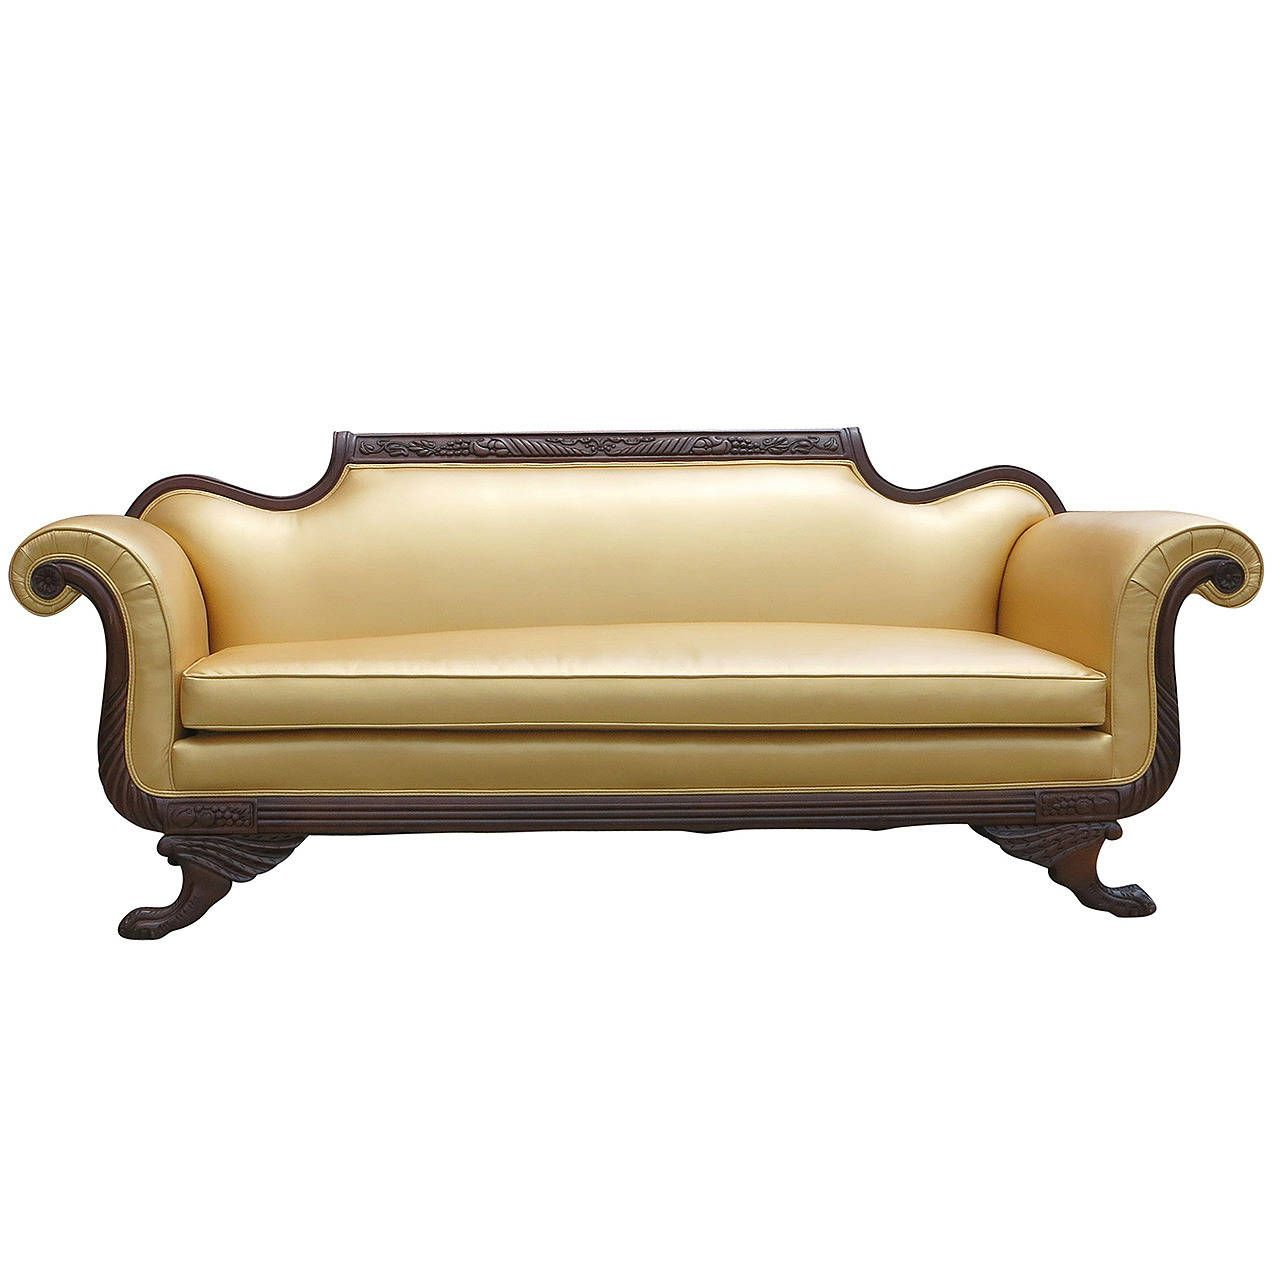 Empire Sofa duncan phyfe style empire sofa duncan phyfe royal furniture and